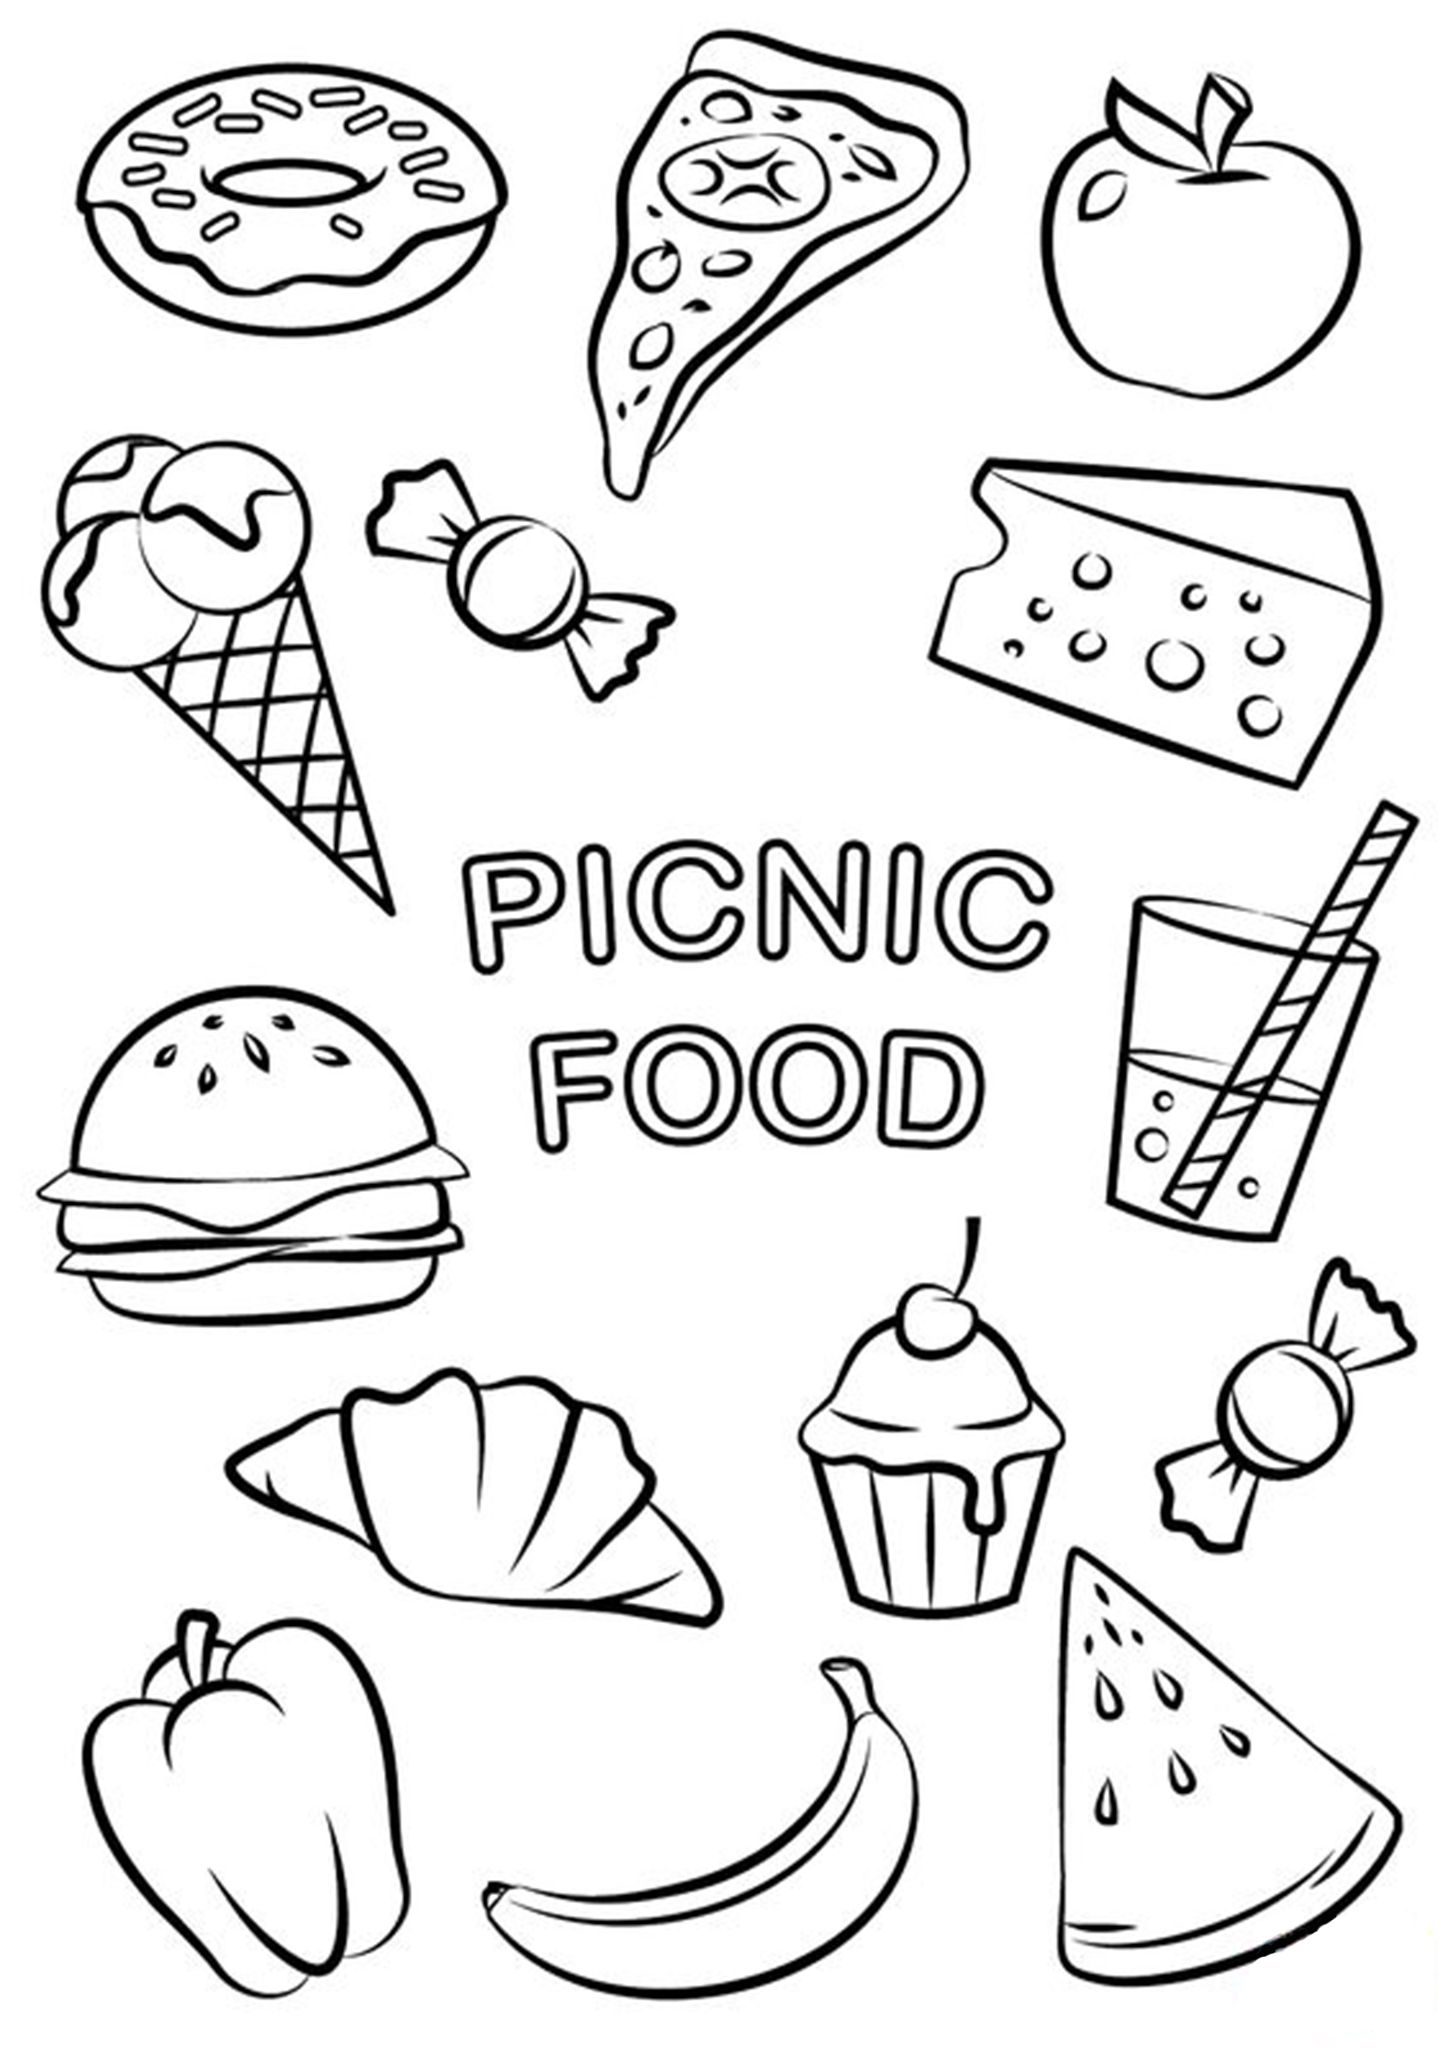 Free Easy To Print Food Coloring Pages Food Coloring Pages Free Printable Coloring Pages Fruit Coloring Pages